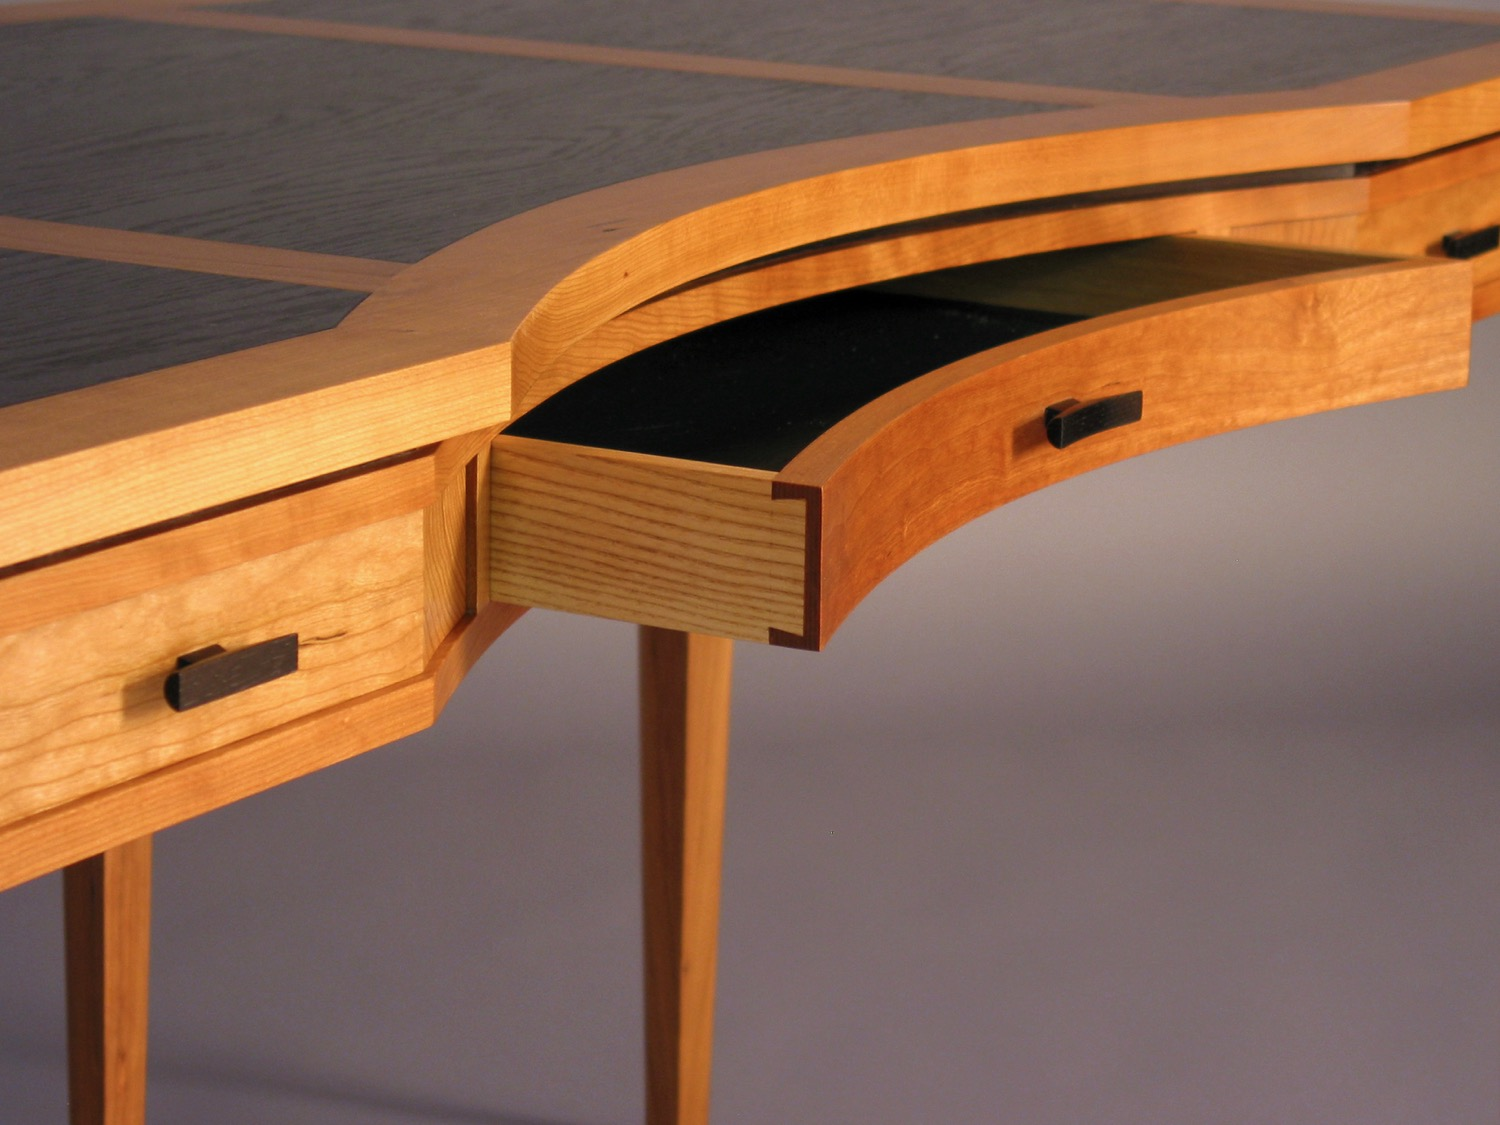 Ridge desk detail - cherry, bog oak, ash, leather lined dovetail drawers with hand-carved drawer pulls